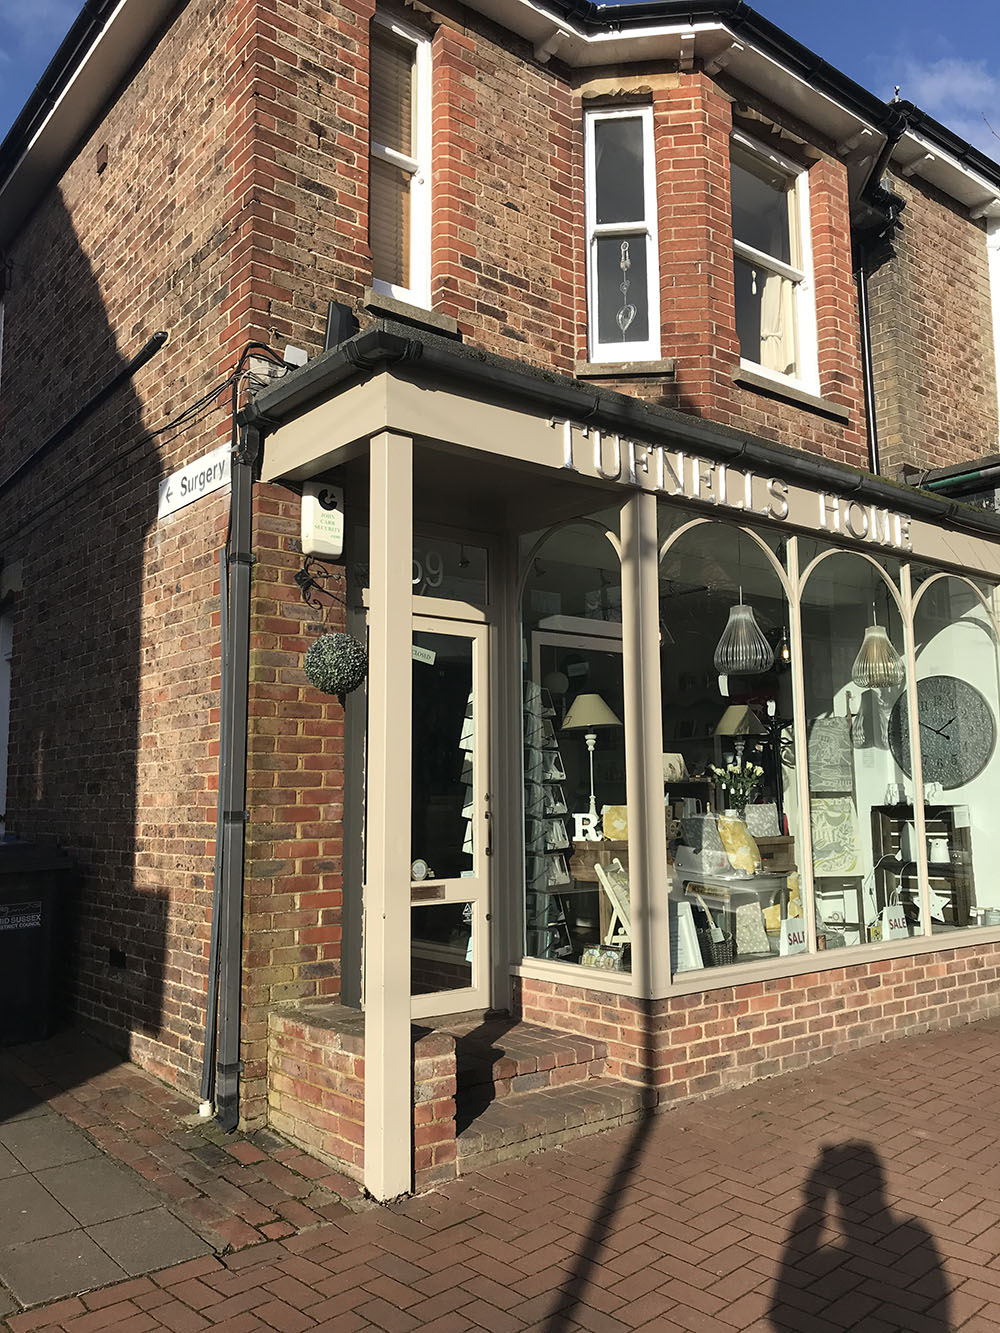 7 - Tufnells Home shop on Lindfield High Street